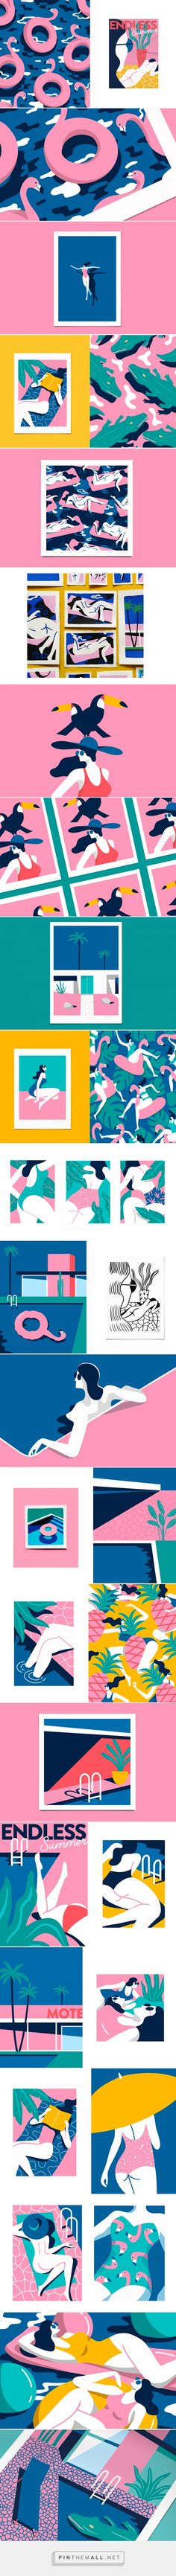 ENDLESS SUMMER on Behance - created via https://pinthemall.net